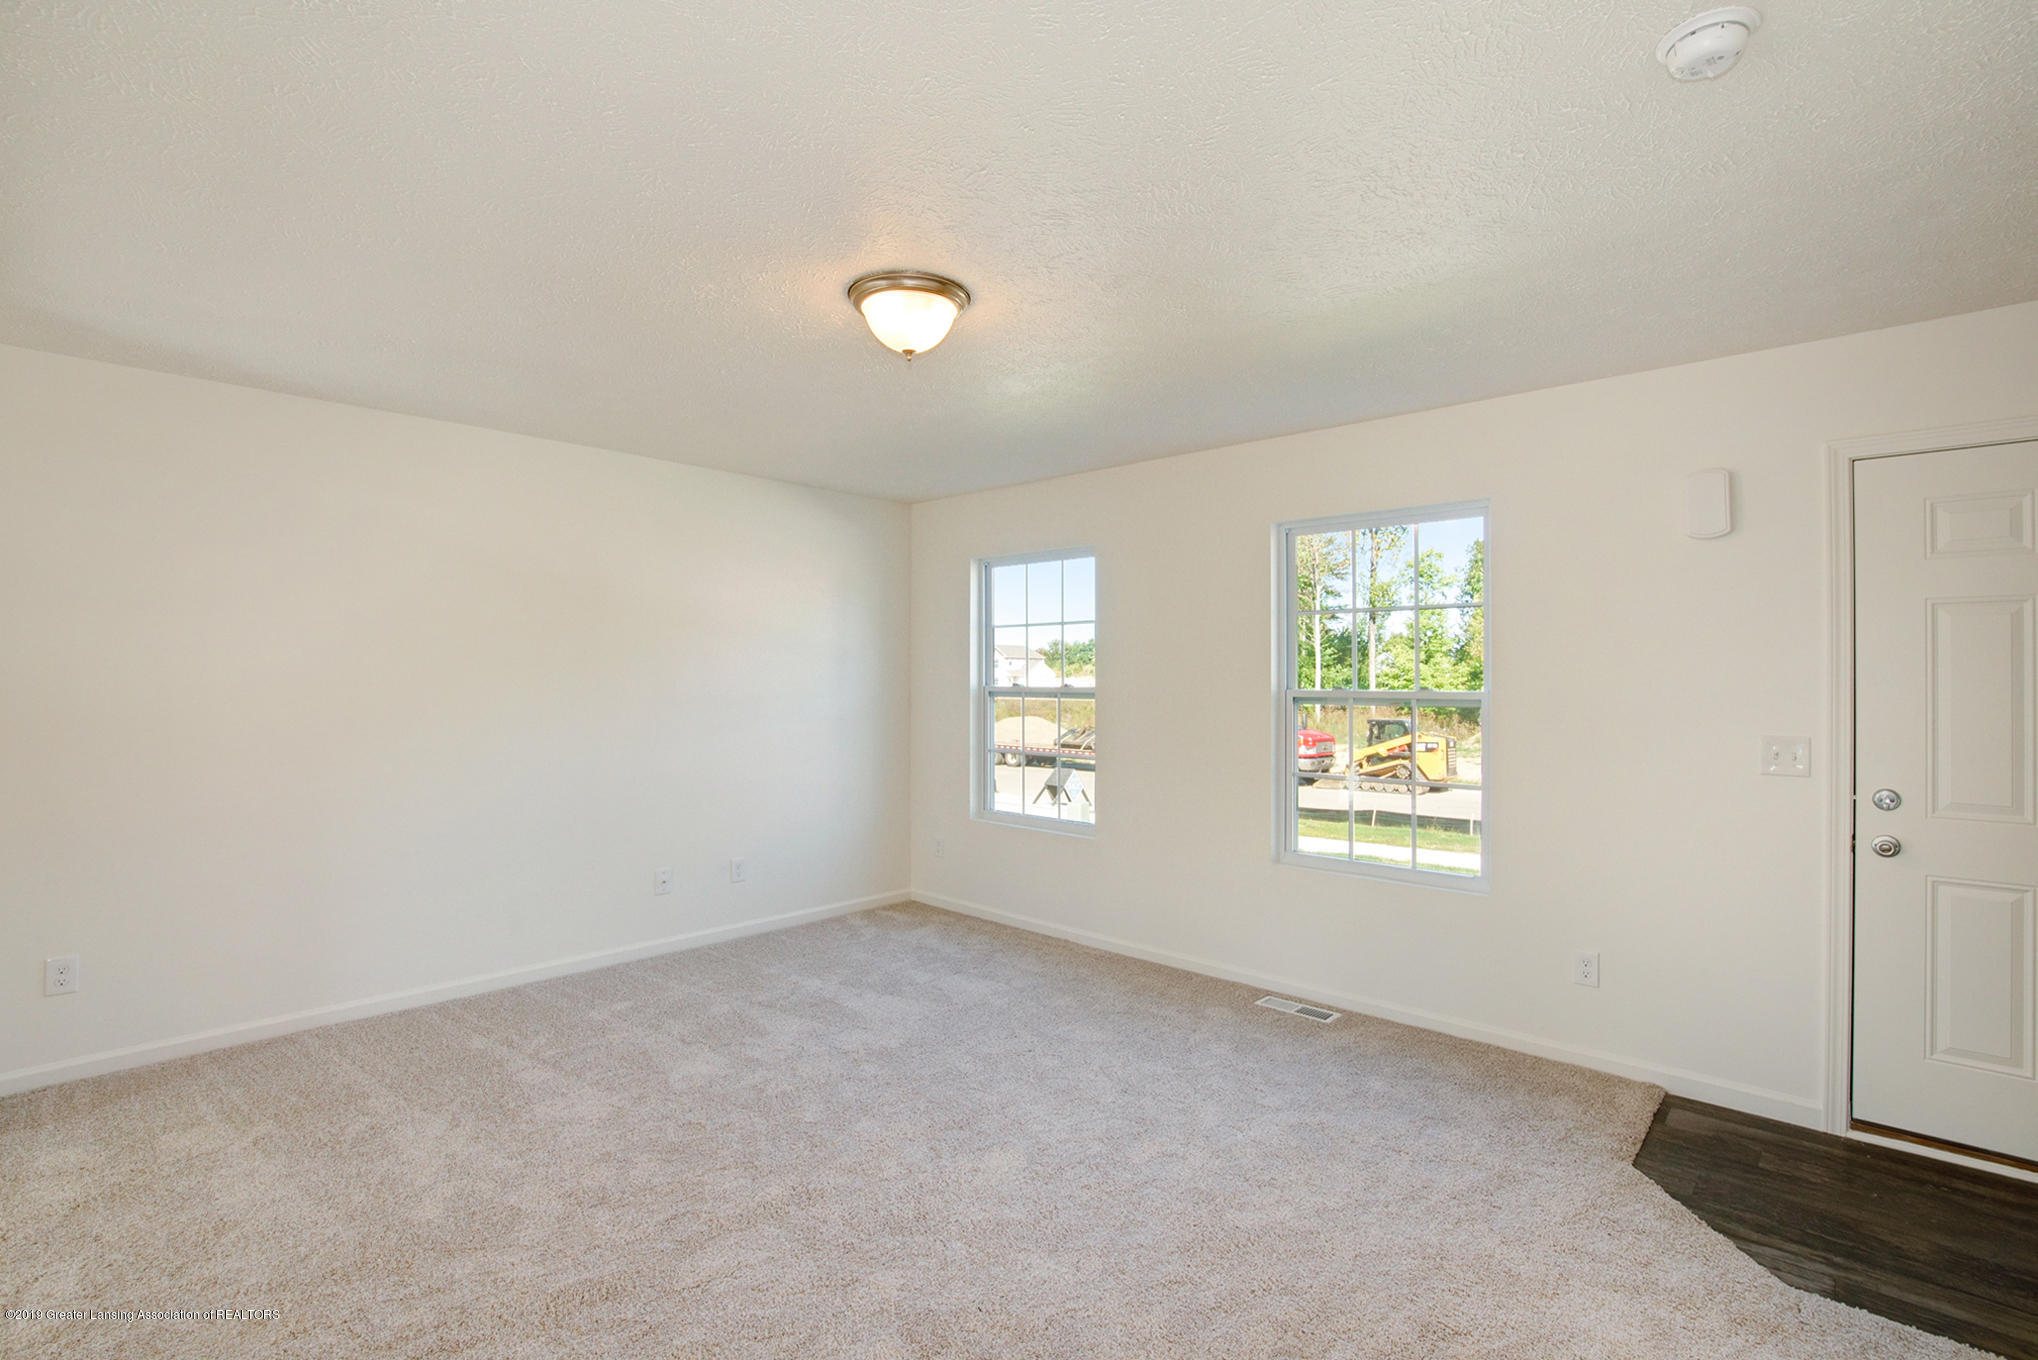 236 Noleigh - OAK079-i1810-Great Room2 - 3